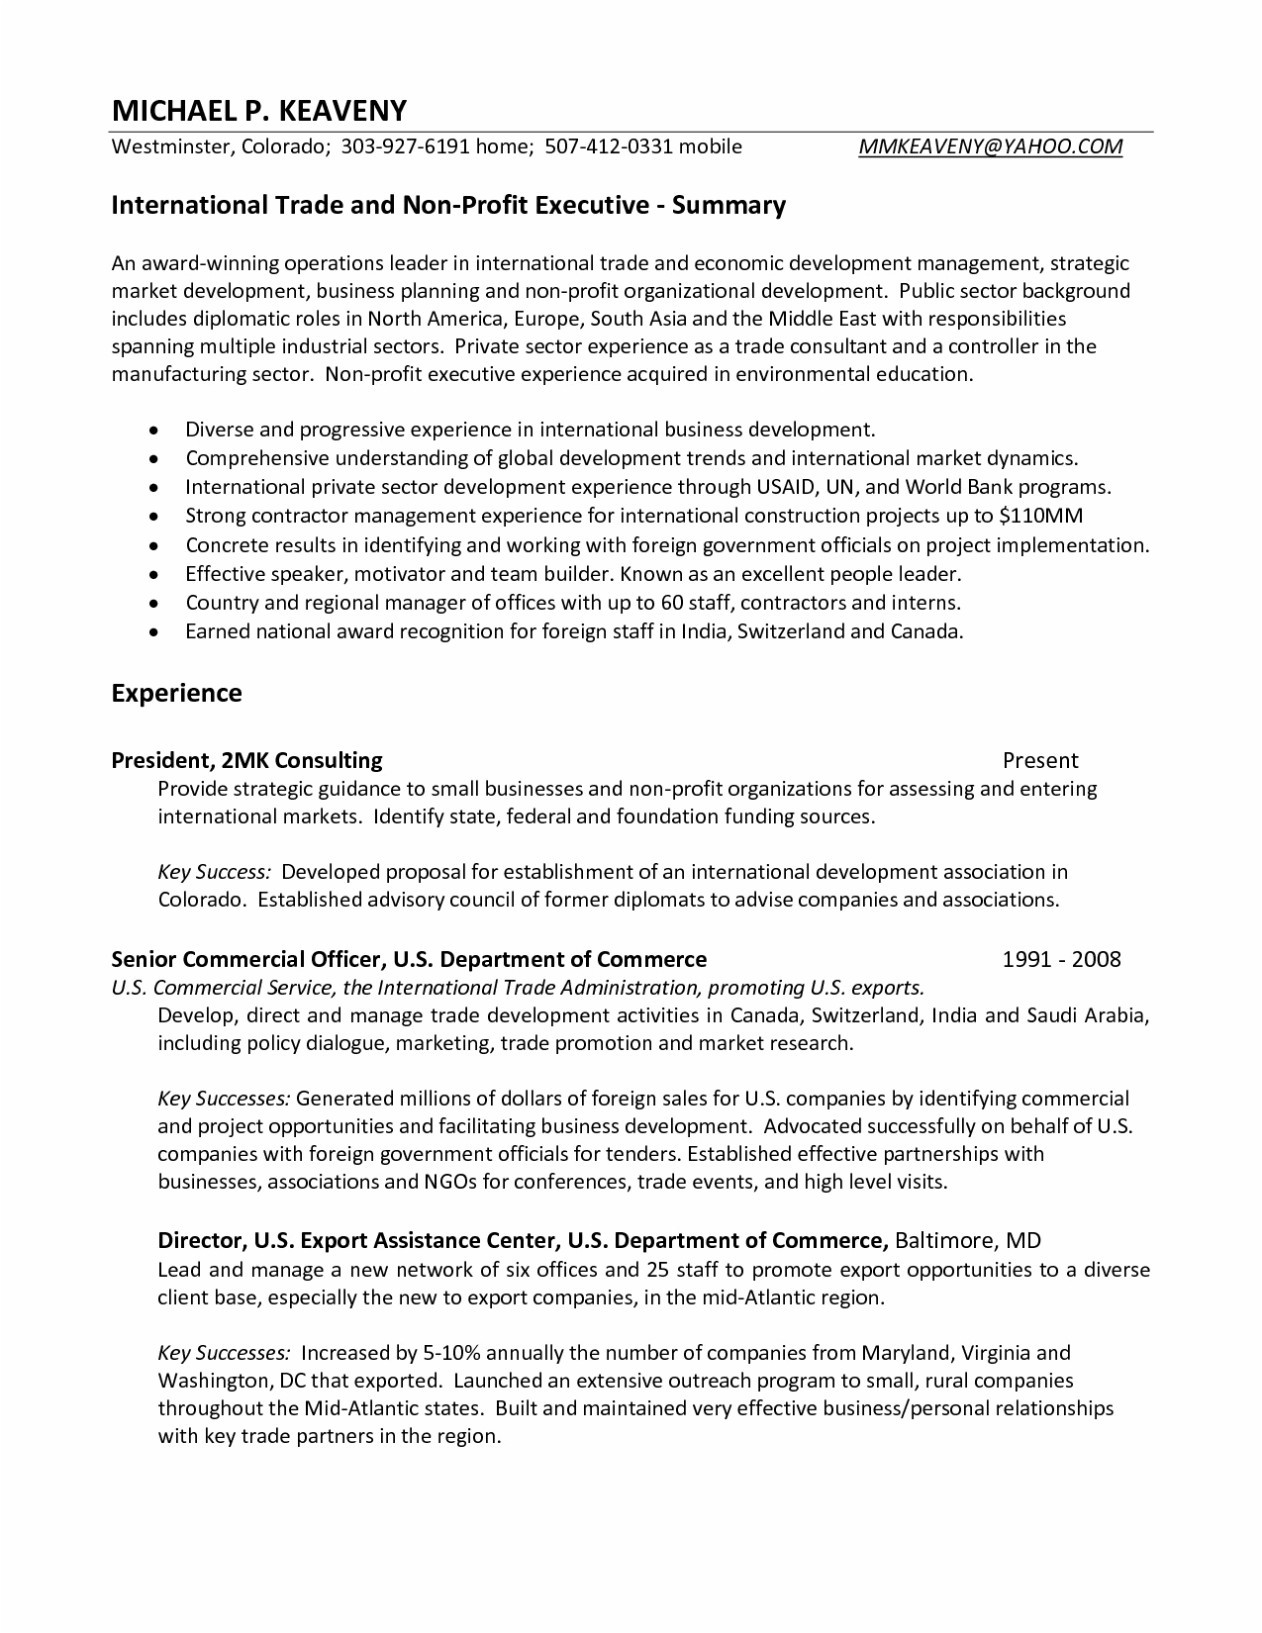 College Student Resume for Internship - Popular Internship Resume Sample for College Students Vcuregistry